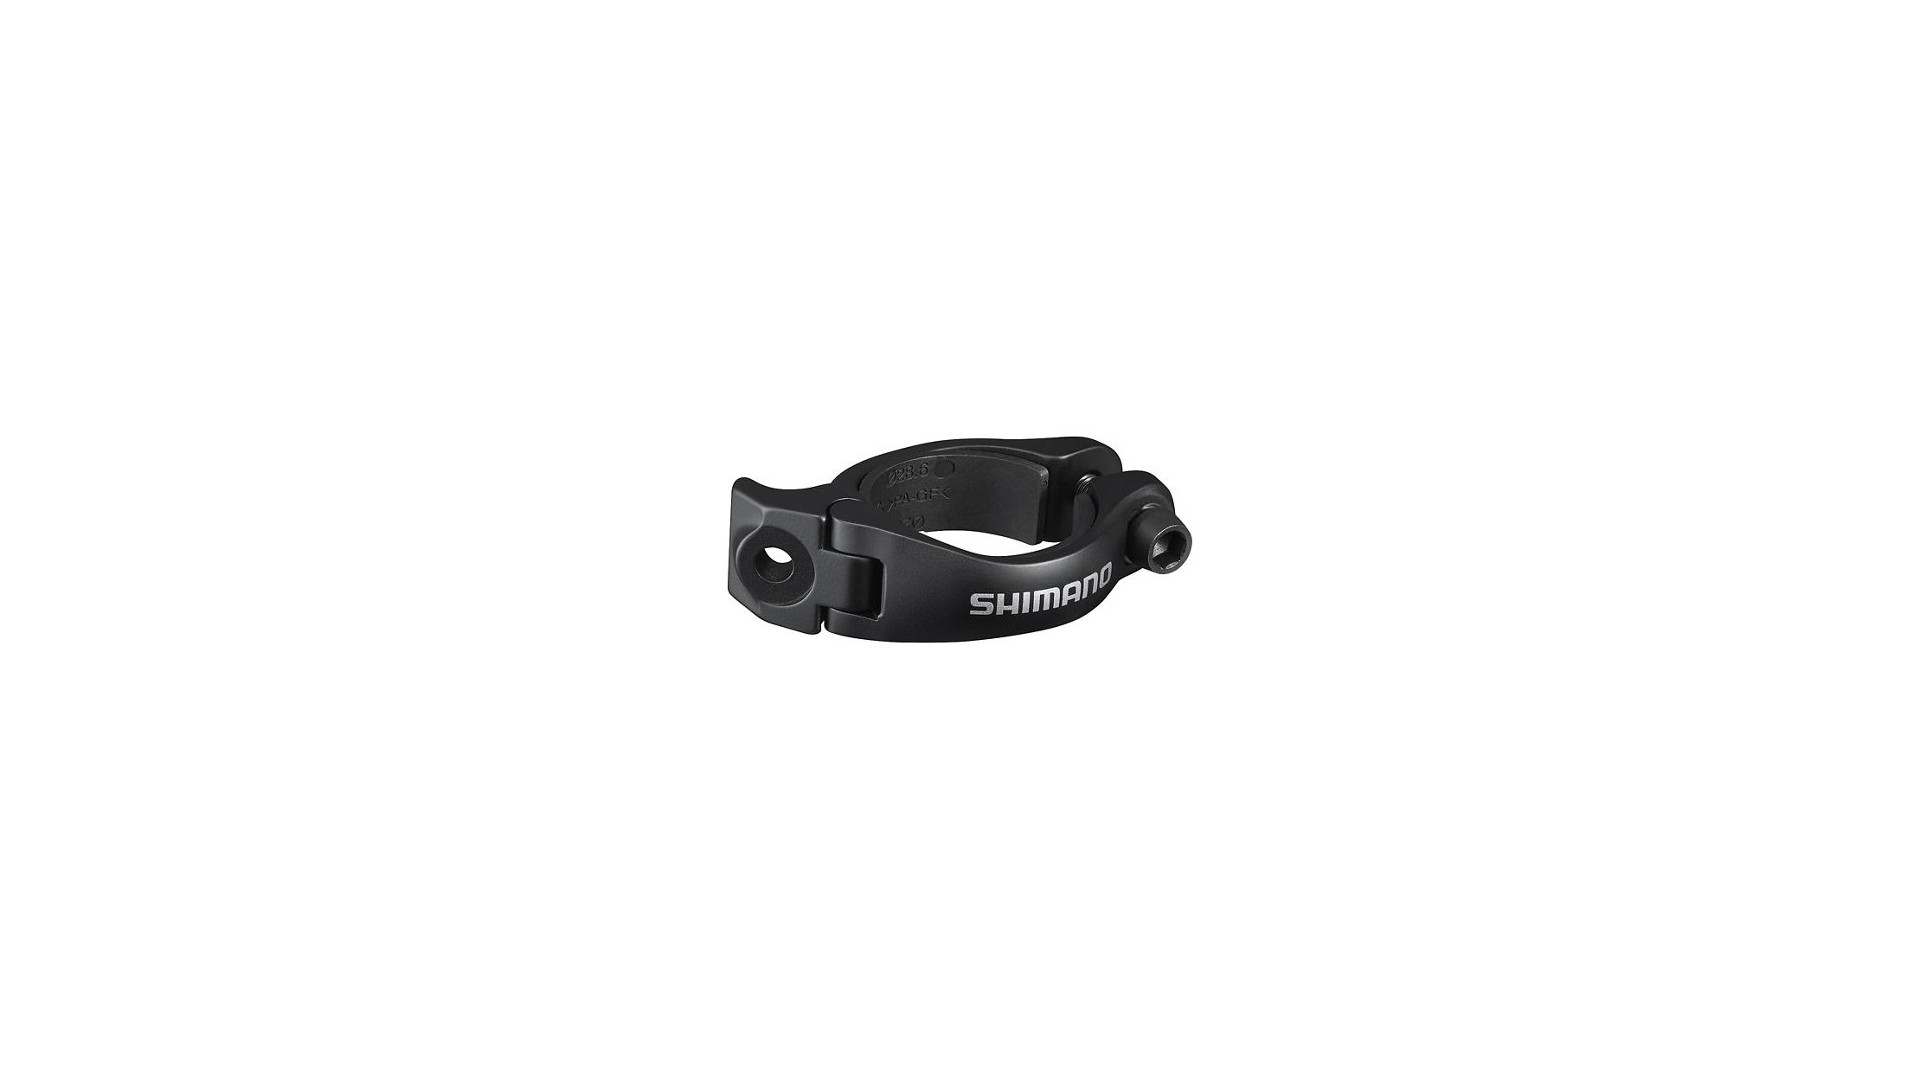 Front Derailleur Clamp Band Adapter R9150 Soldare Fixation